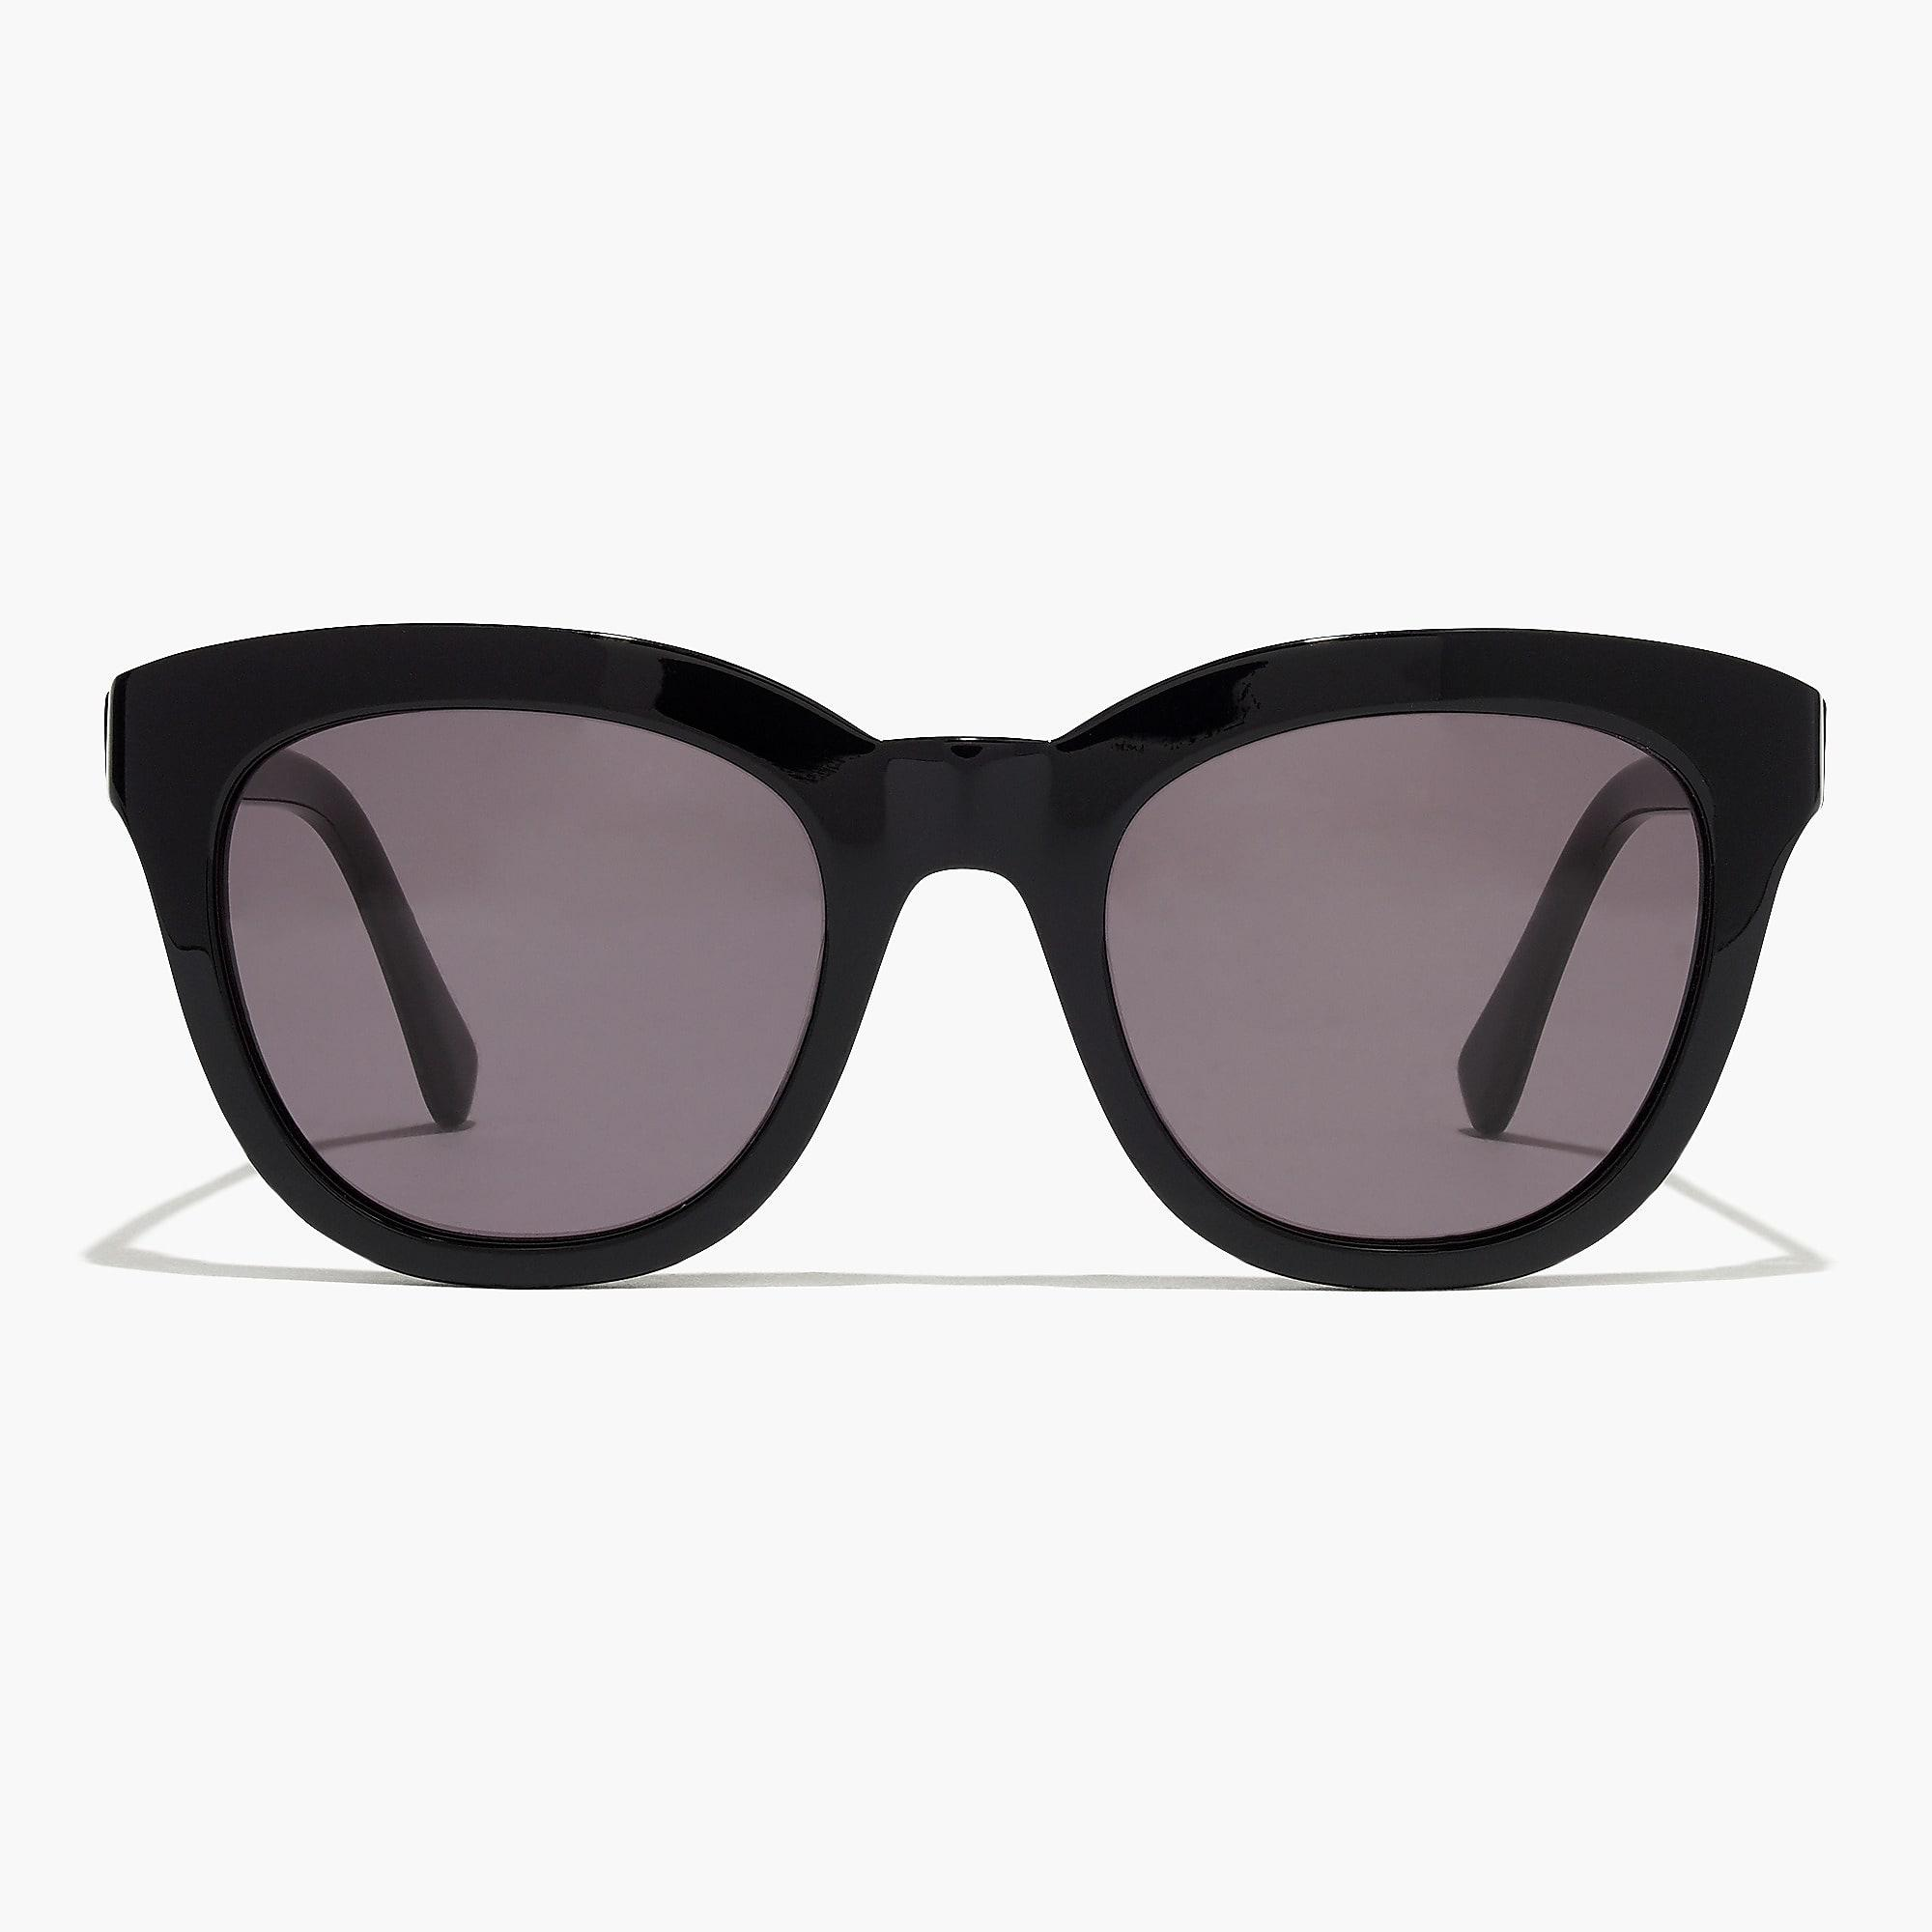 9ab349505f J.Crew Cabana Oversized Sunglasses in Black - Lyst